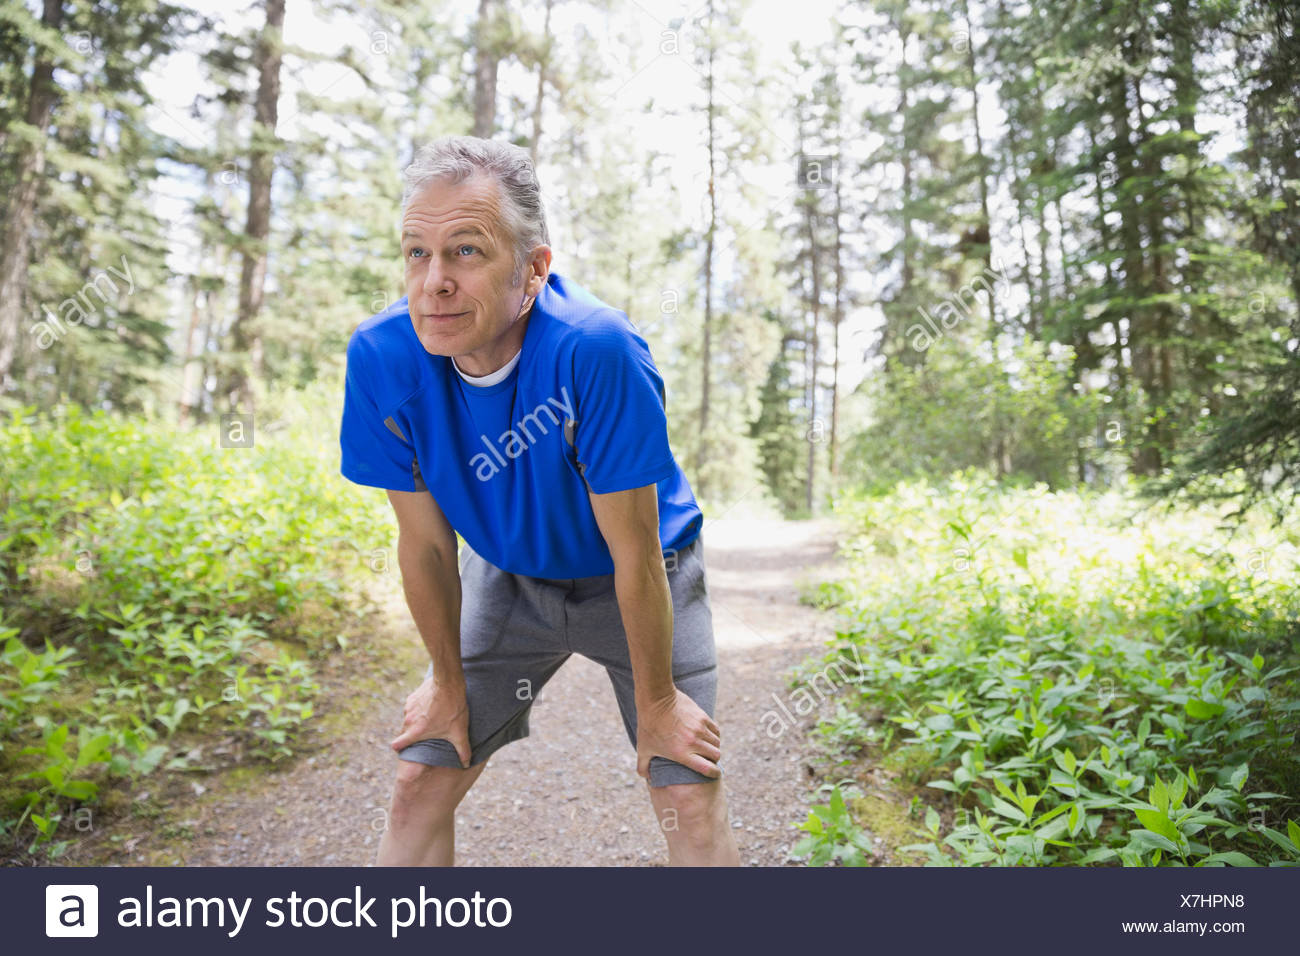 Middle-aged man taking a rest outdoors - Stock Image